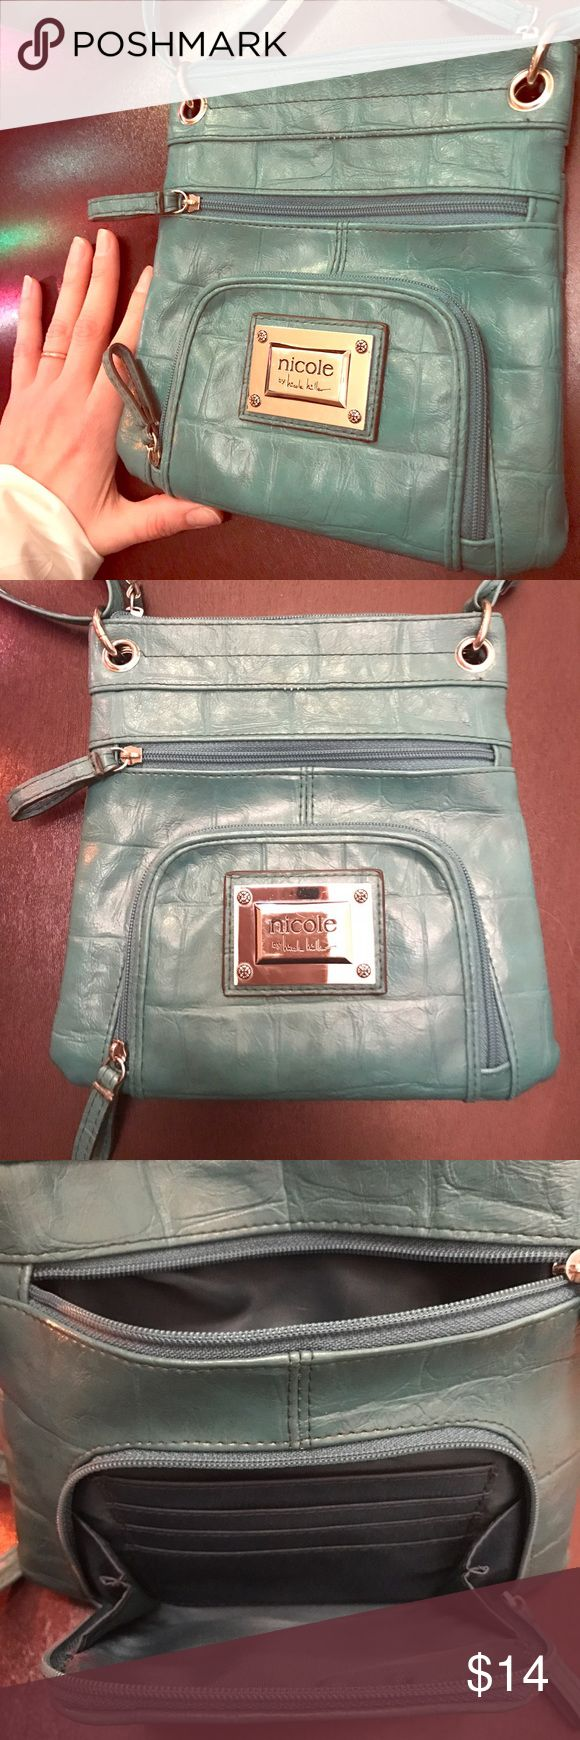 Nicole Miller teal purse Cute real purse with front zippered pocket, room for 4 credit cards. Zippered pocket on back, 4 zippered pockets in all. Shoulder or cross body worn. Gently used, no stains or visible wear. Nicole by Nicole Miller Bags Crossbody Bags